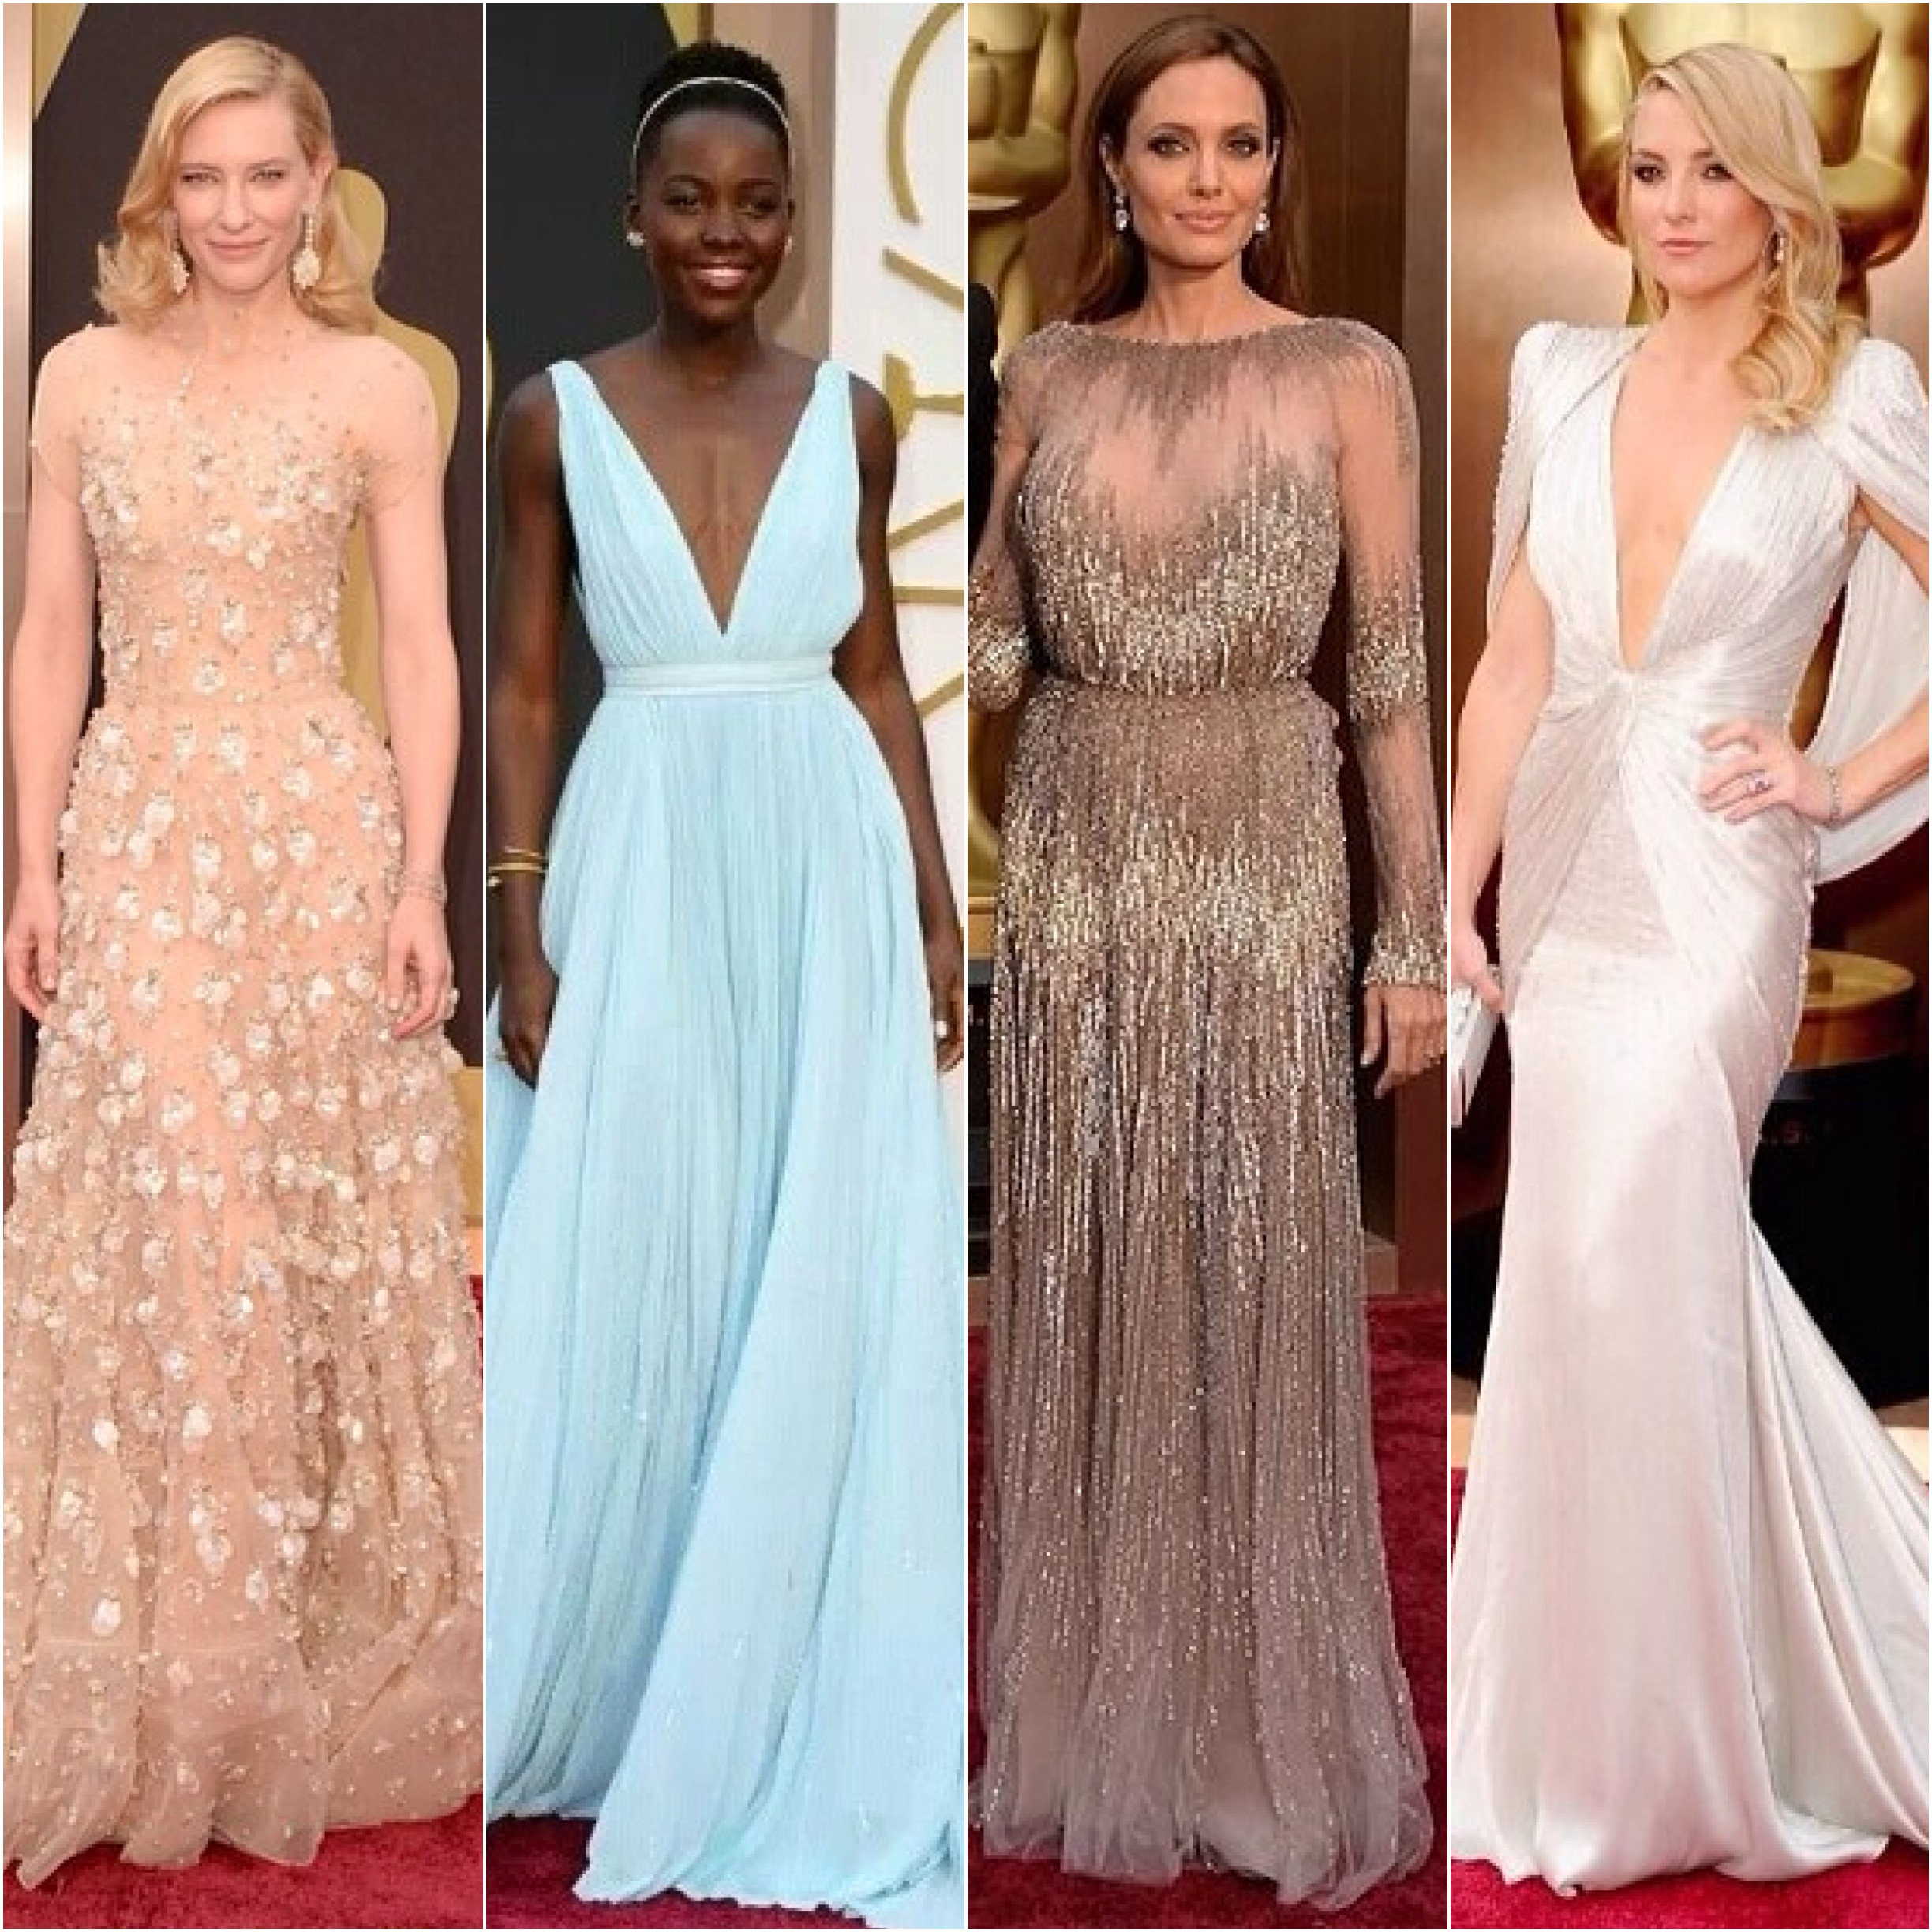 Cate Blanchett in Armani Prive, Lupita Nyong'o in Prada, Angelina Jolie in Elie Saab, and Kate Hudson in Versace